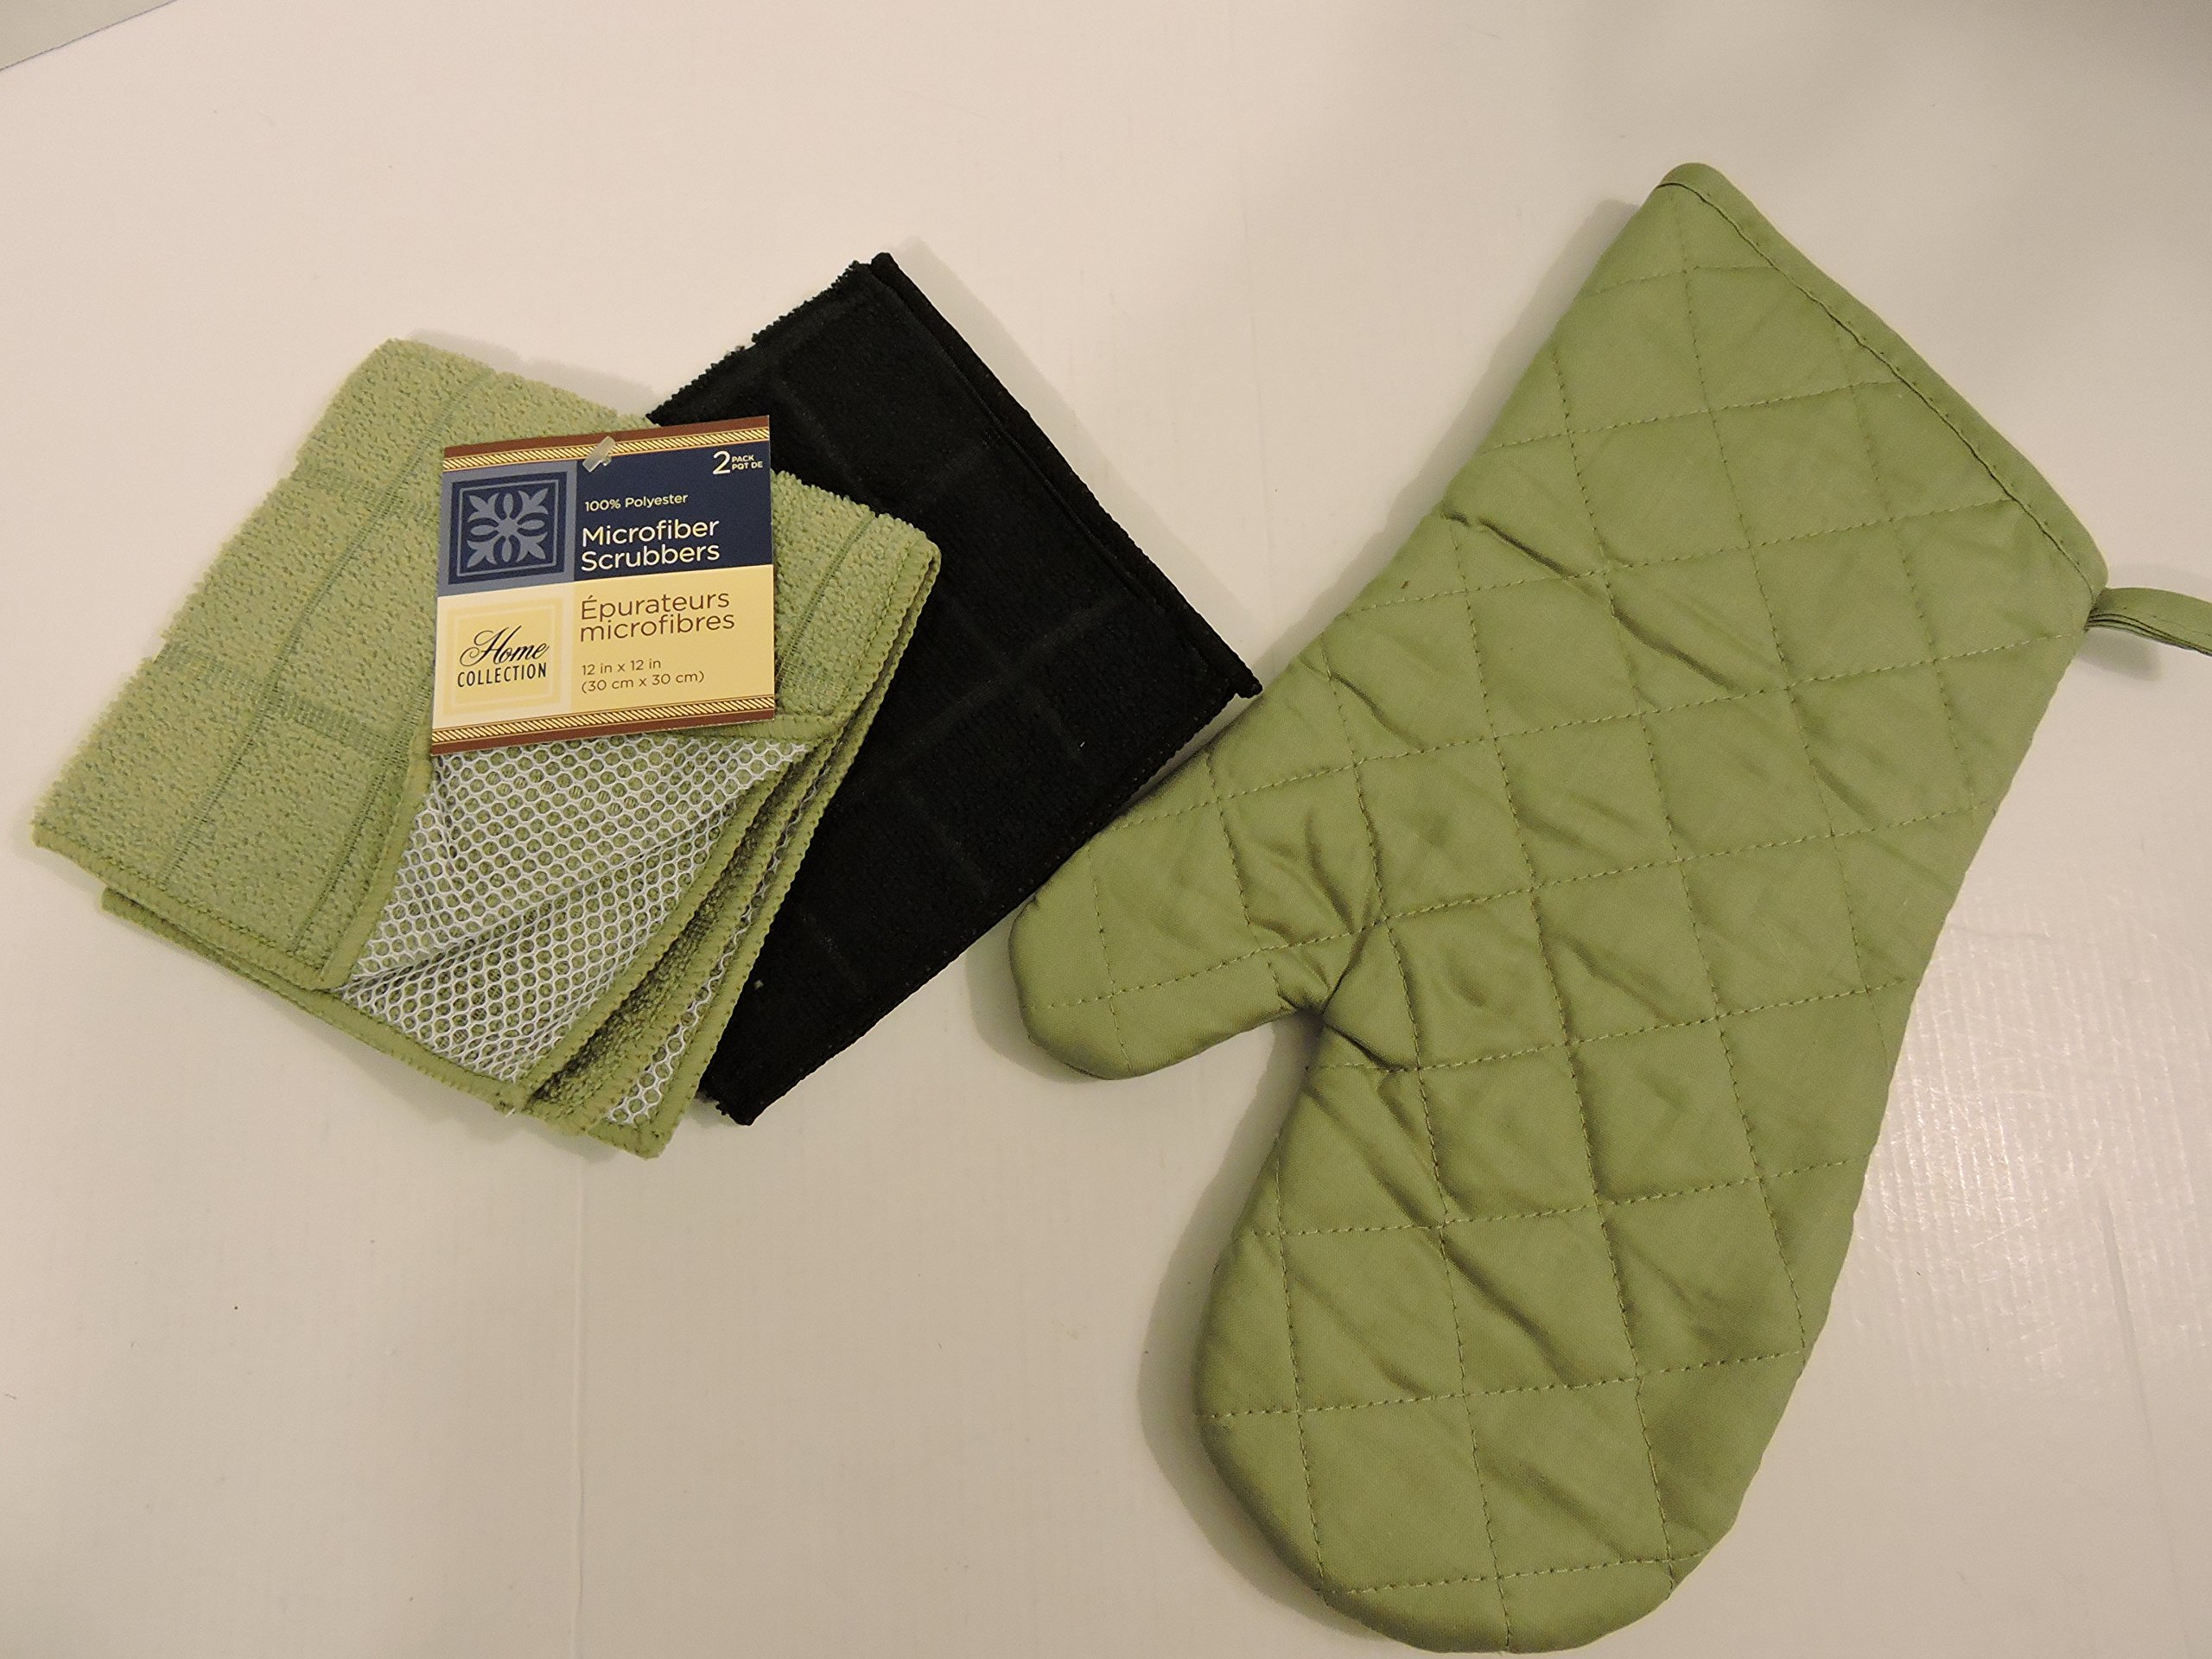 Bundle of Kitchen Linens by Home Collection Featuring: Kitchen Towels, Pot Holders, Oven Mitts, Dishcloths, Dish Drying Mat (7, Solid Green & Black)